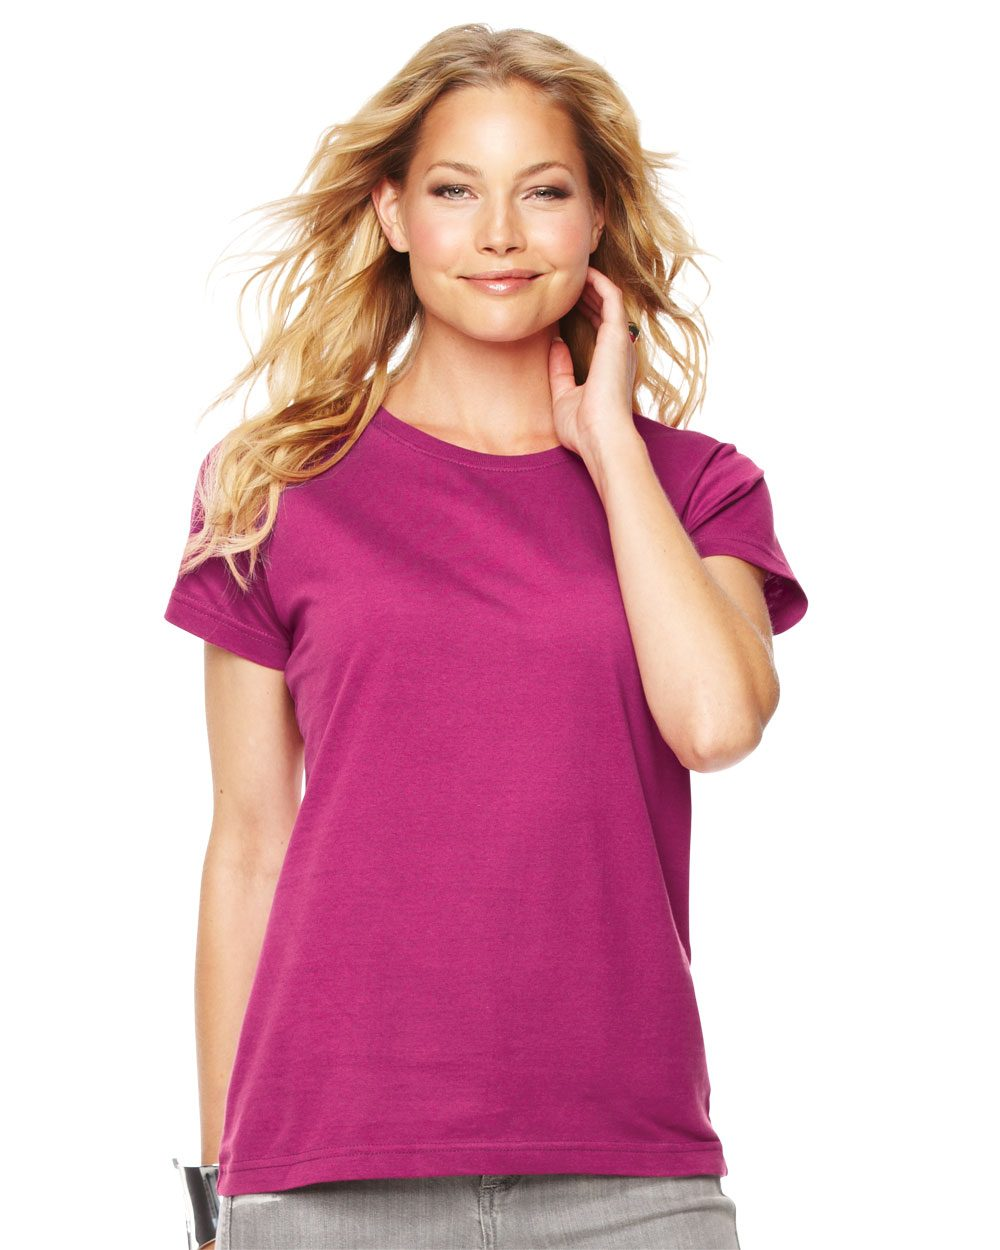 LAT 3516 - Ladies' Fine Jersey T-Shirt